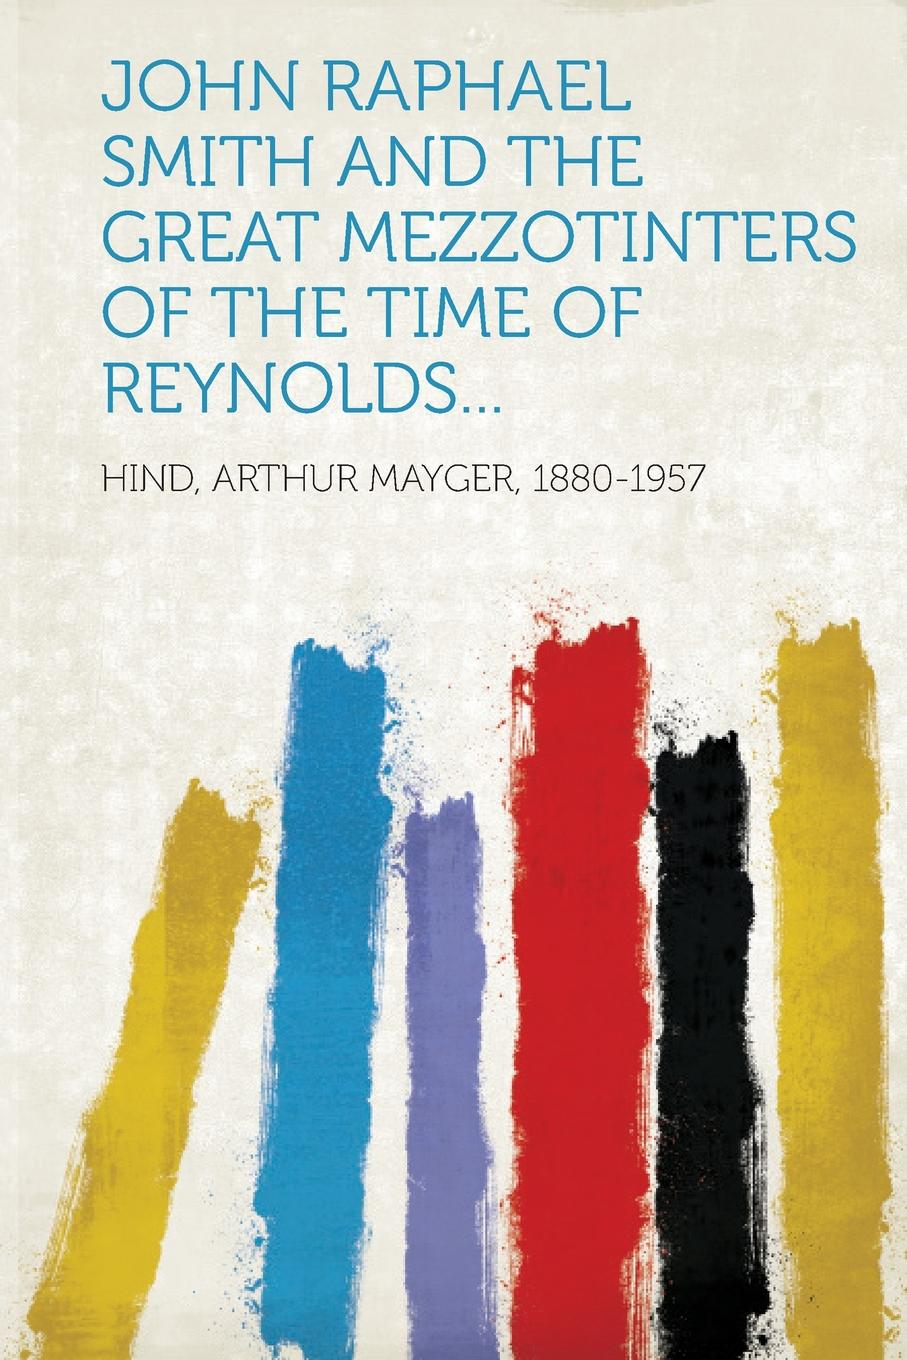 John Raphael Smith and the Great Mezzotinters of the Time of Reynolds...